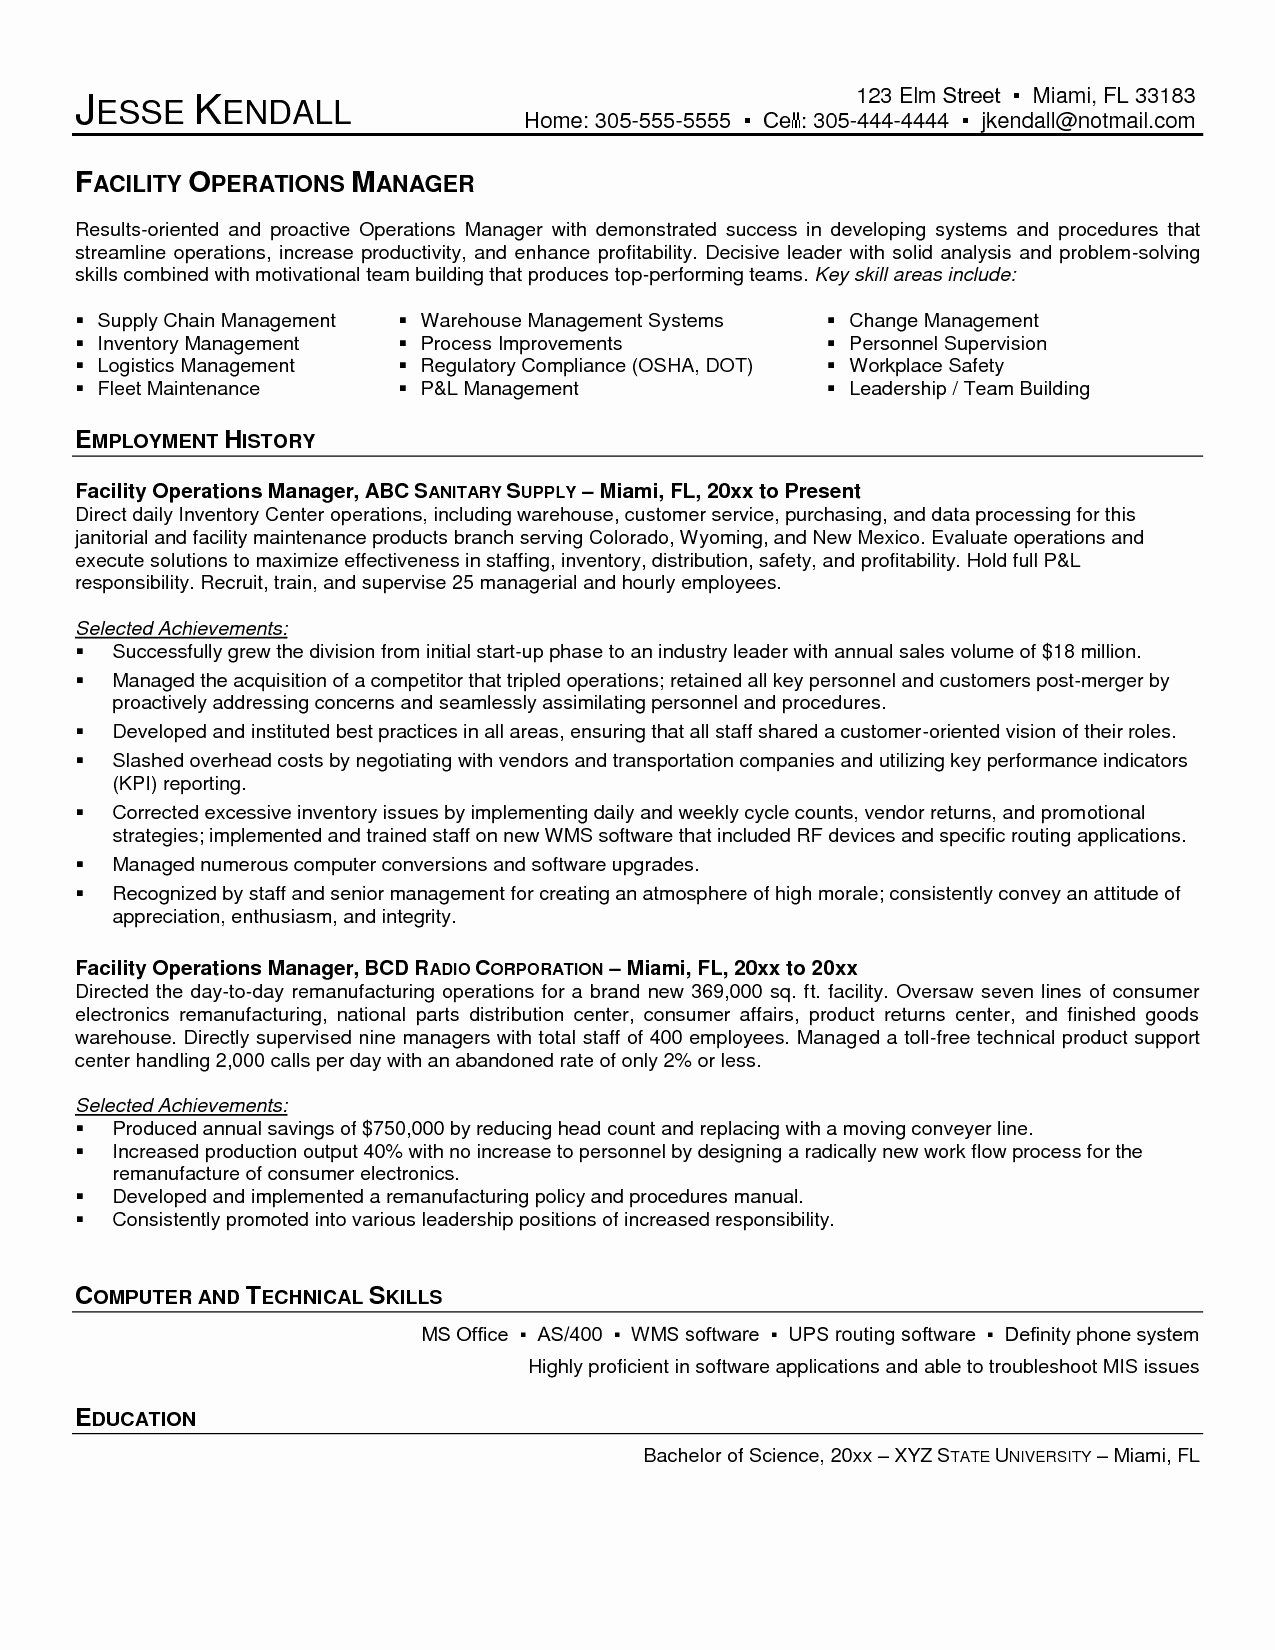 Security Daily Activity Report Template Best Of Example Y Guard Report Writing And Incident Template Operations Management Resume Sample Resume